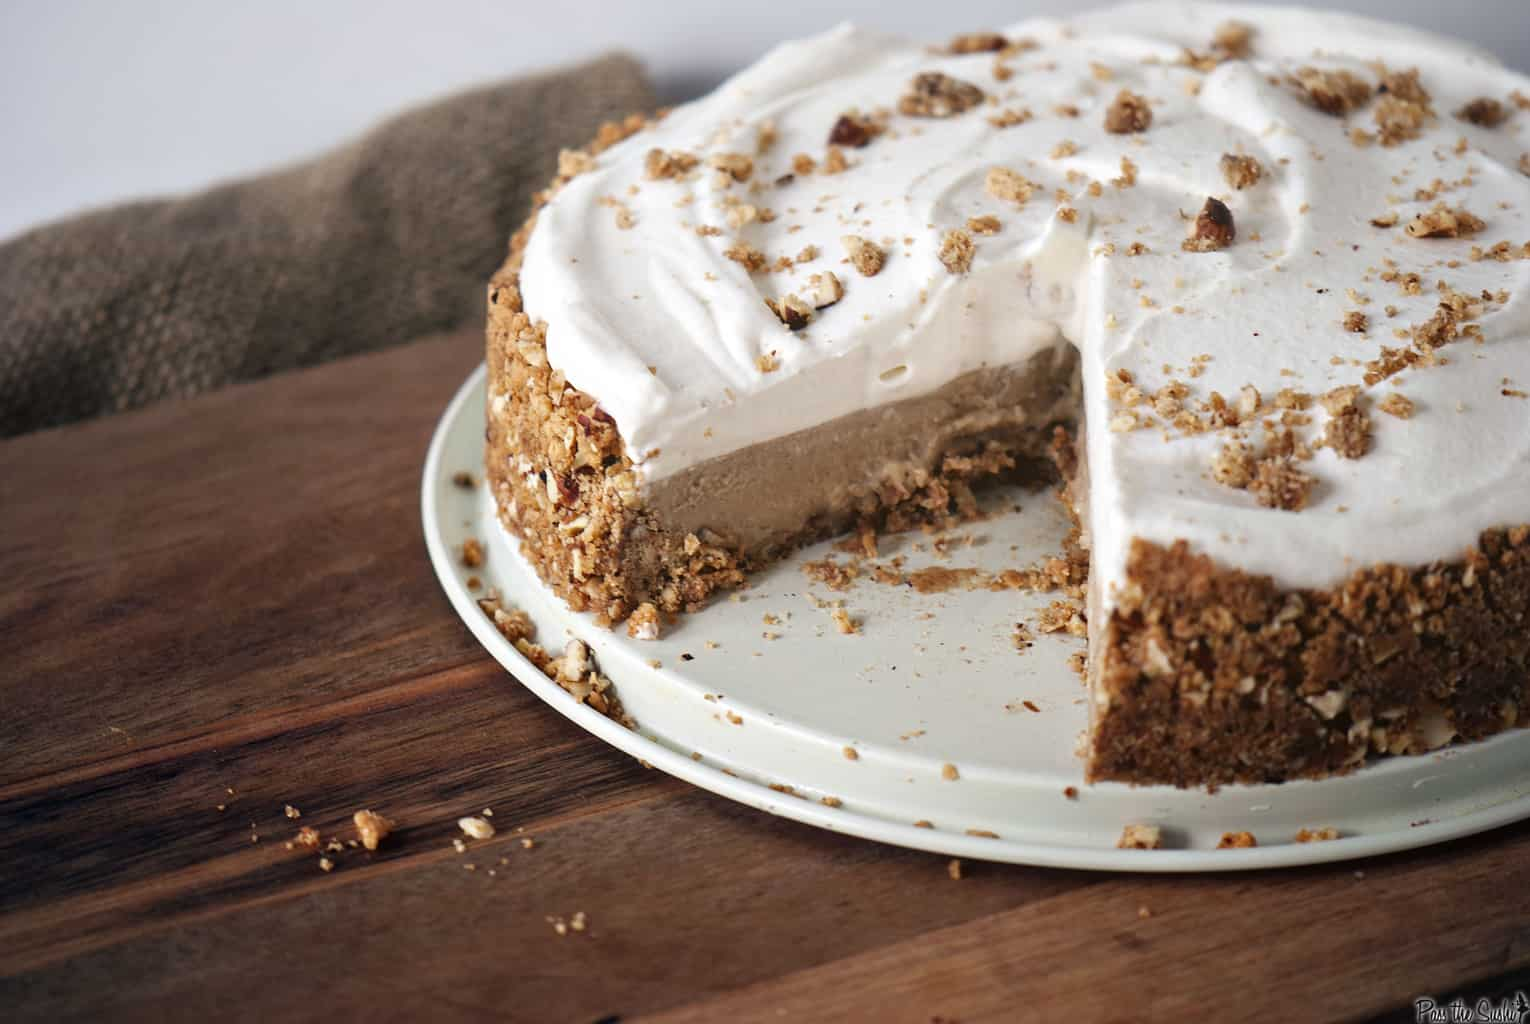 slice missing from the cinnamon chai pie